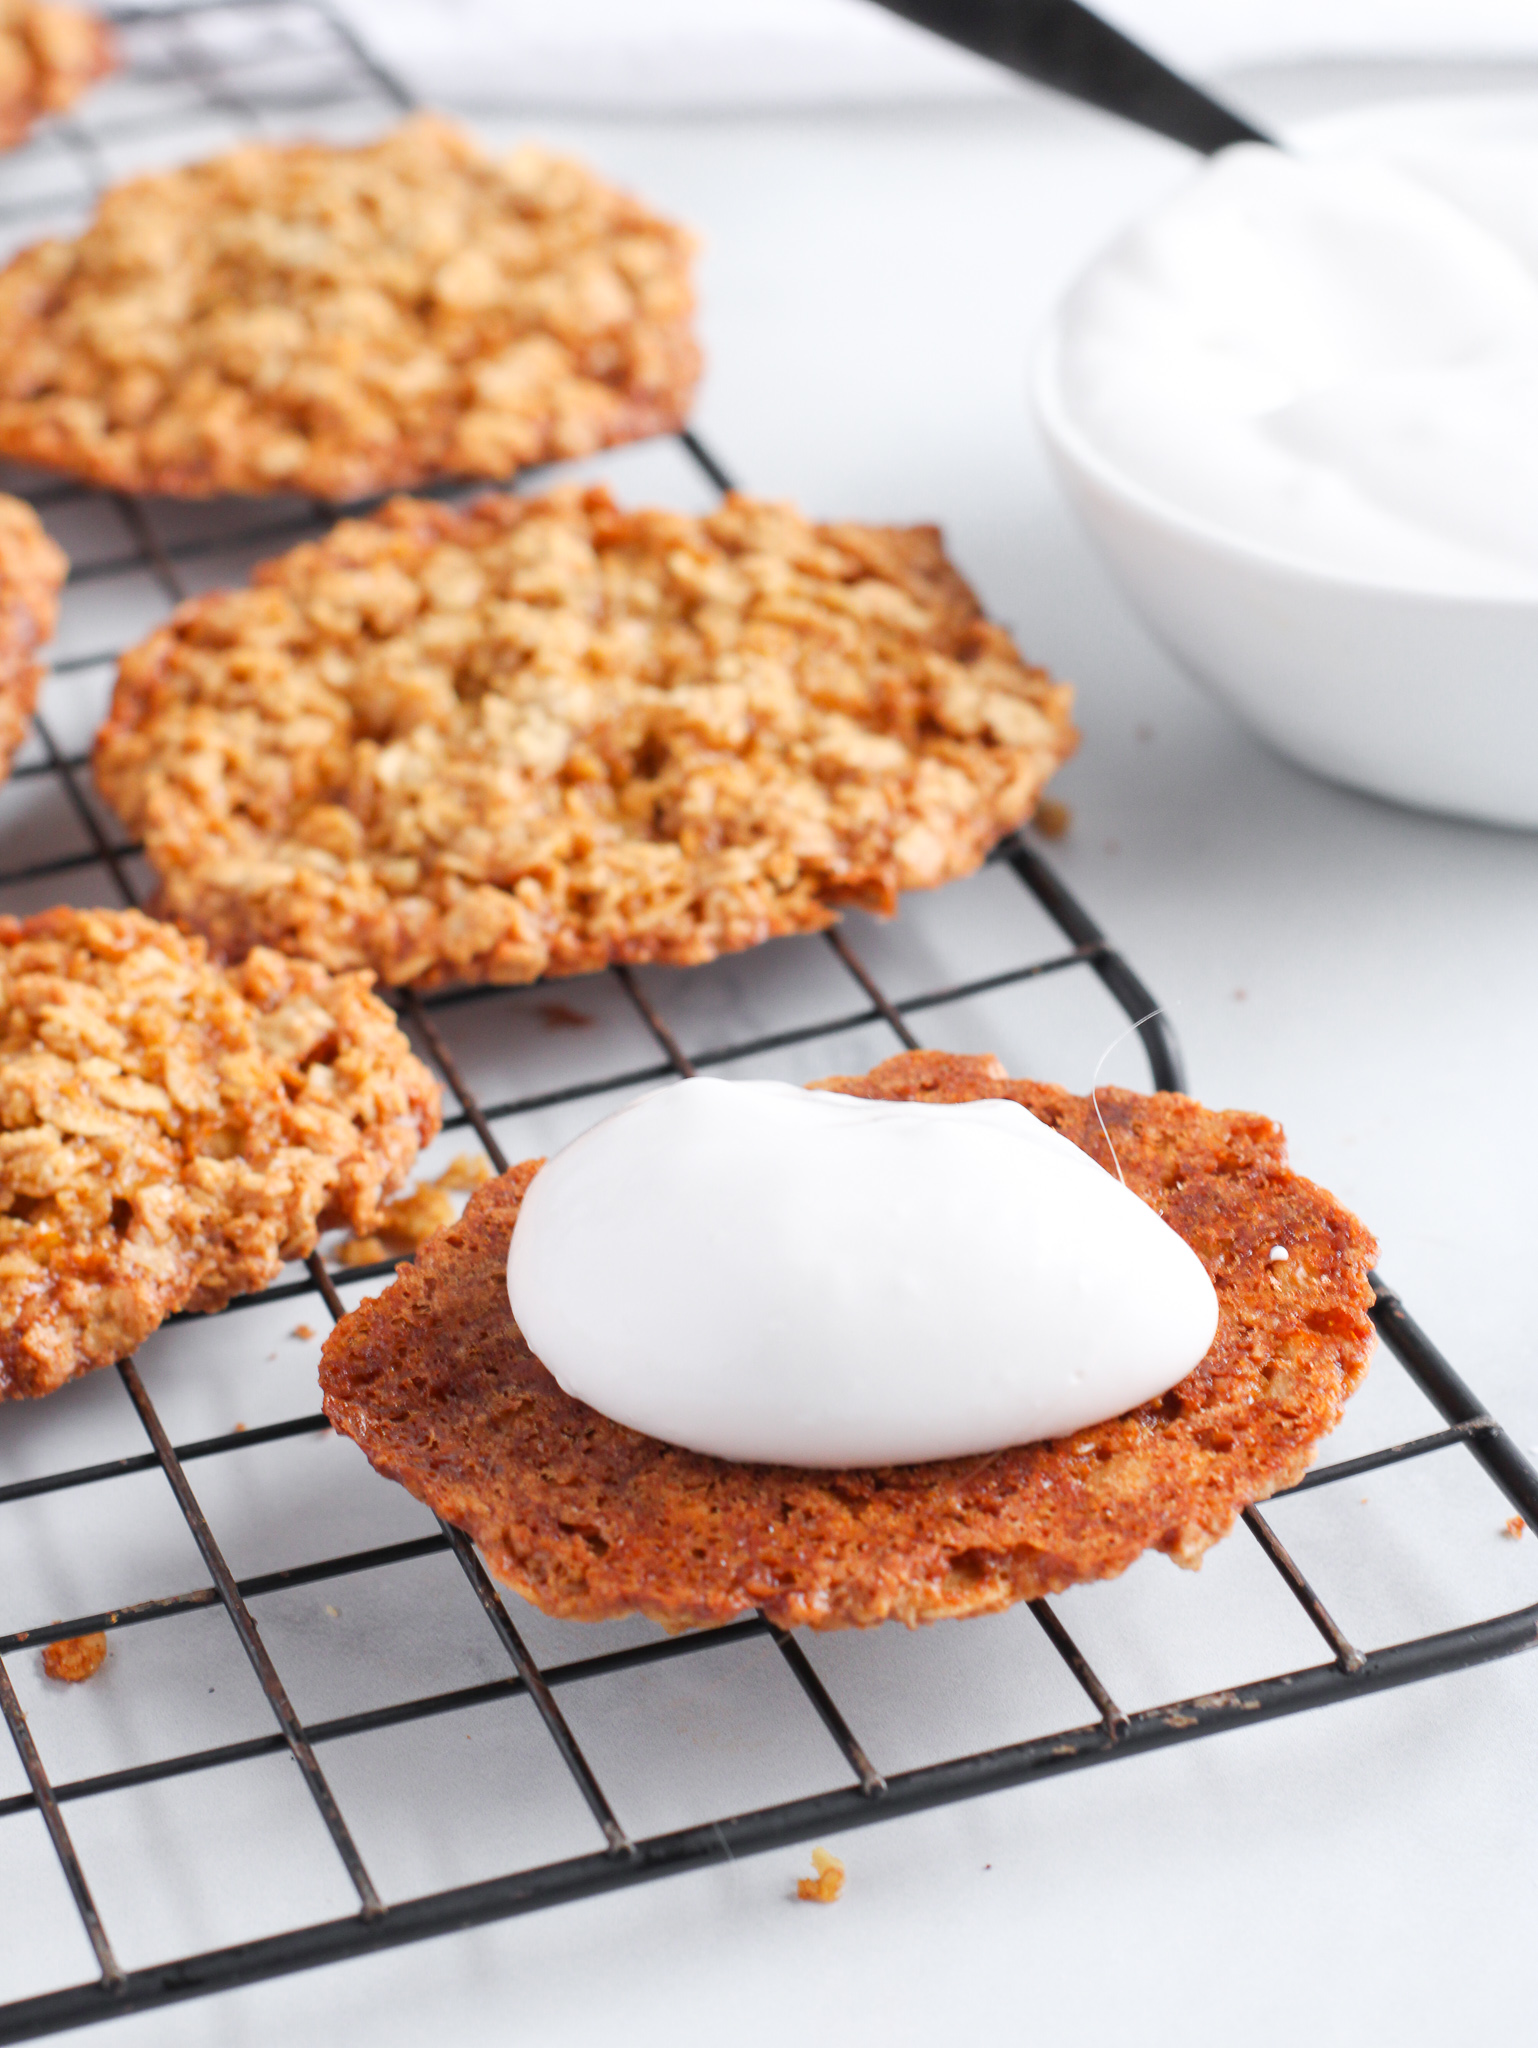 gluten free oatmeal cream pies being assembled with the cookies and a dollop of cream filling ready for the top cookie to make the sandwich.